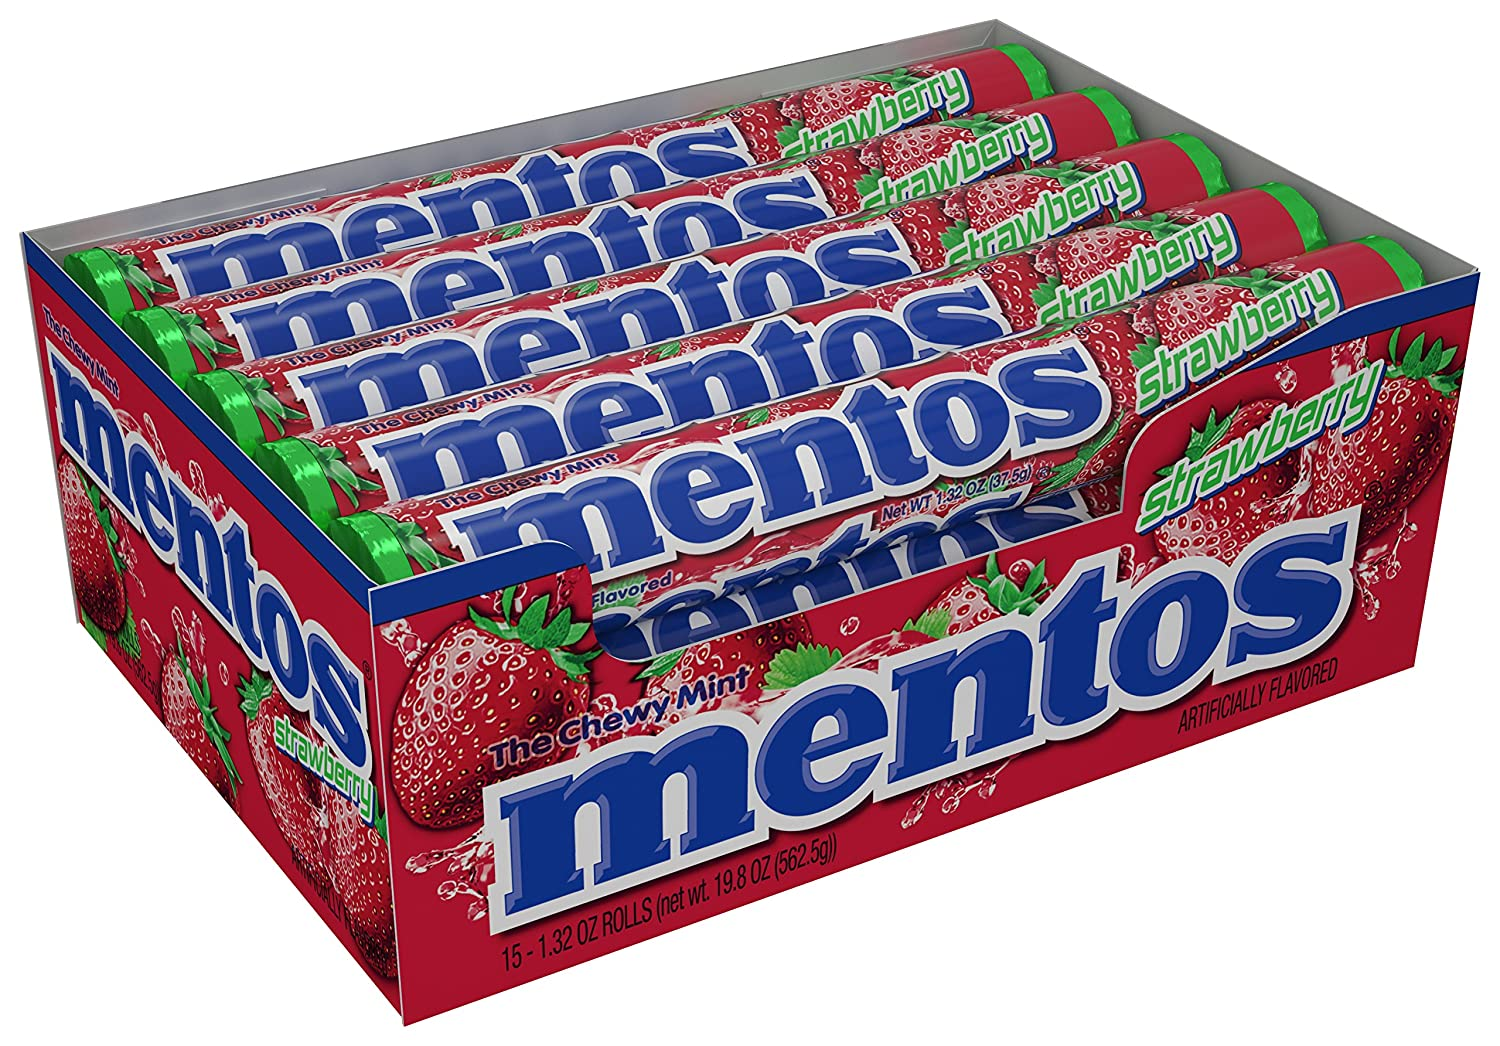 Mentos Chewy Mint Candy Roll, Strawberry, Non Melting, Party, 14 Pieces (Bulk Pack of 15)